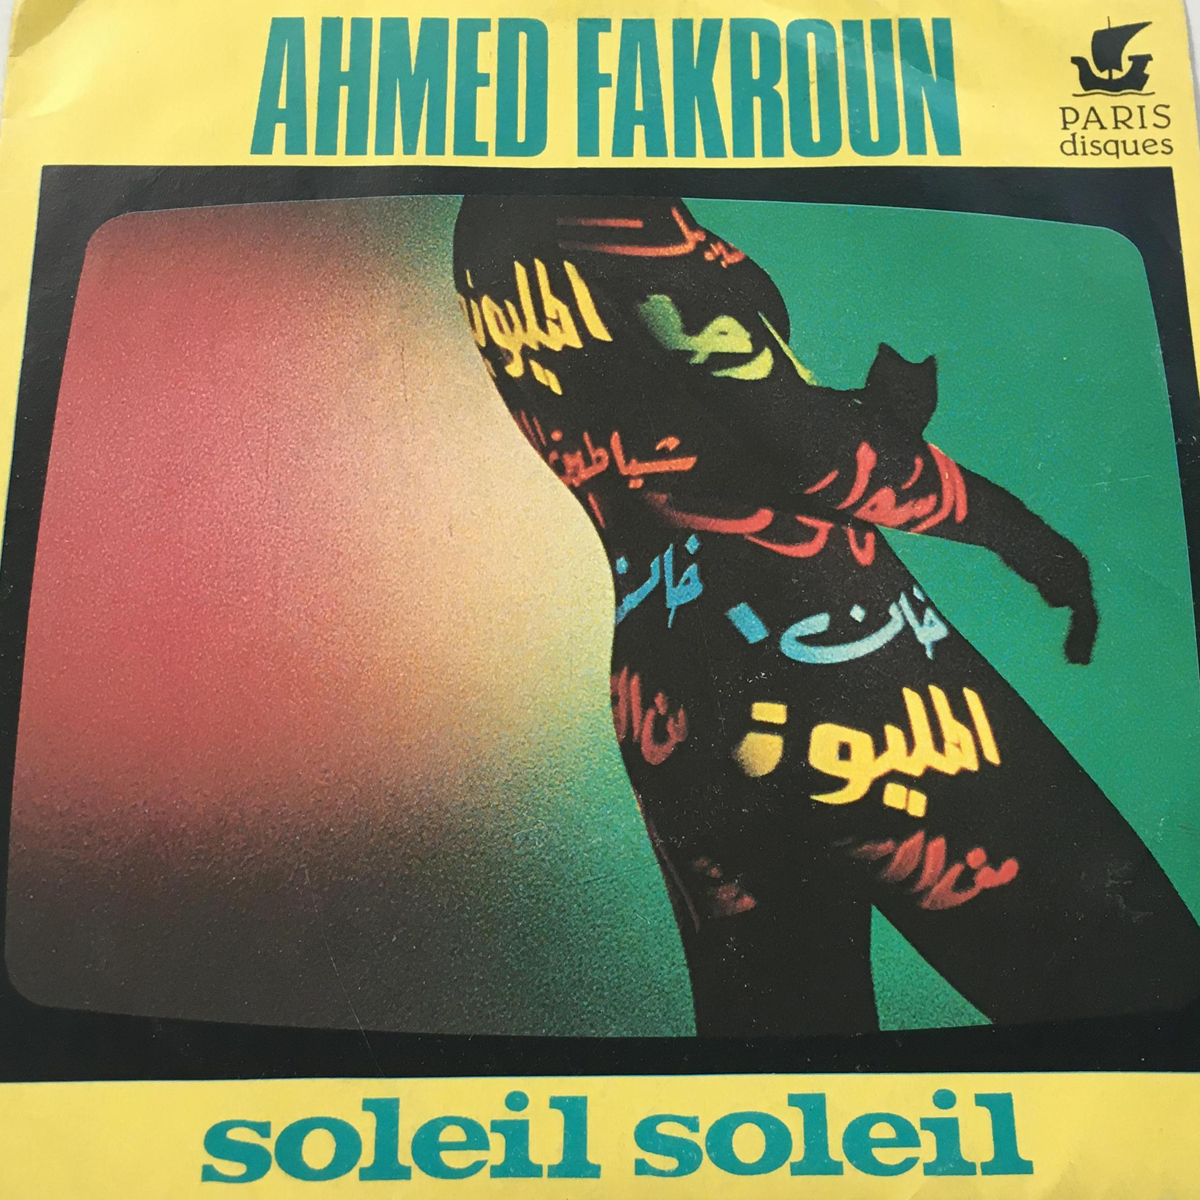 Ahmed Fakroun: rediscovered pioneer in modern Arabic music, live with Dutch-Turkish act Altin Gün